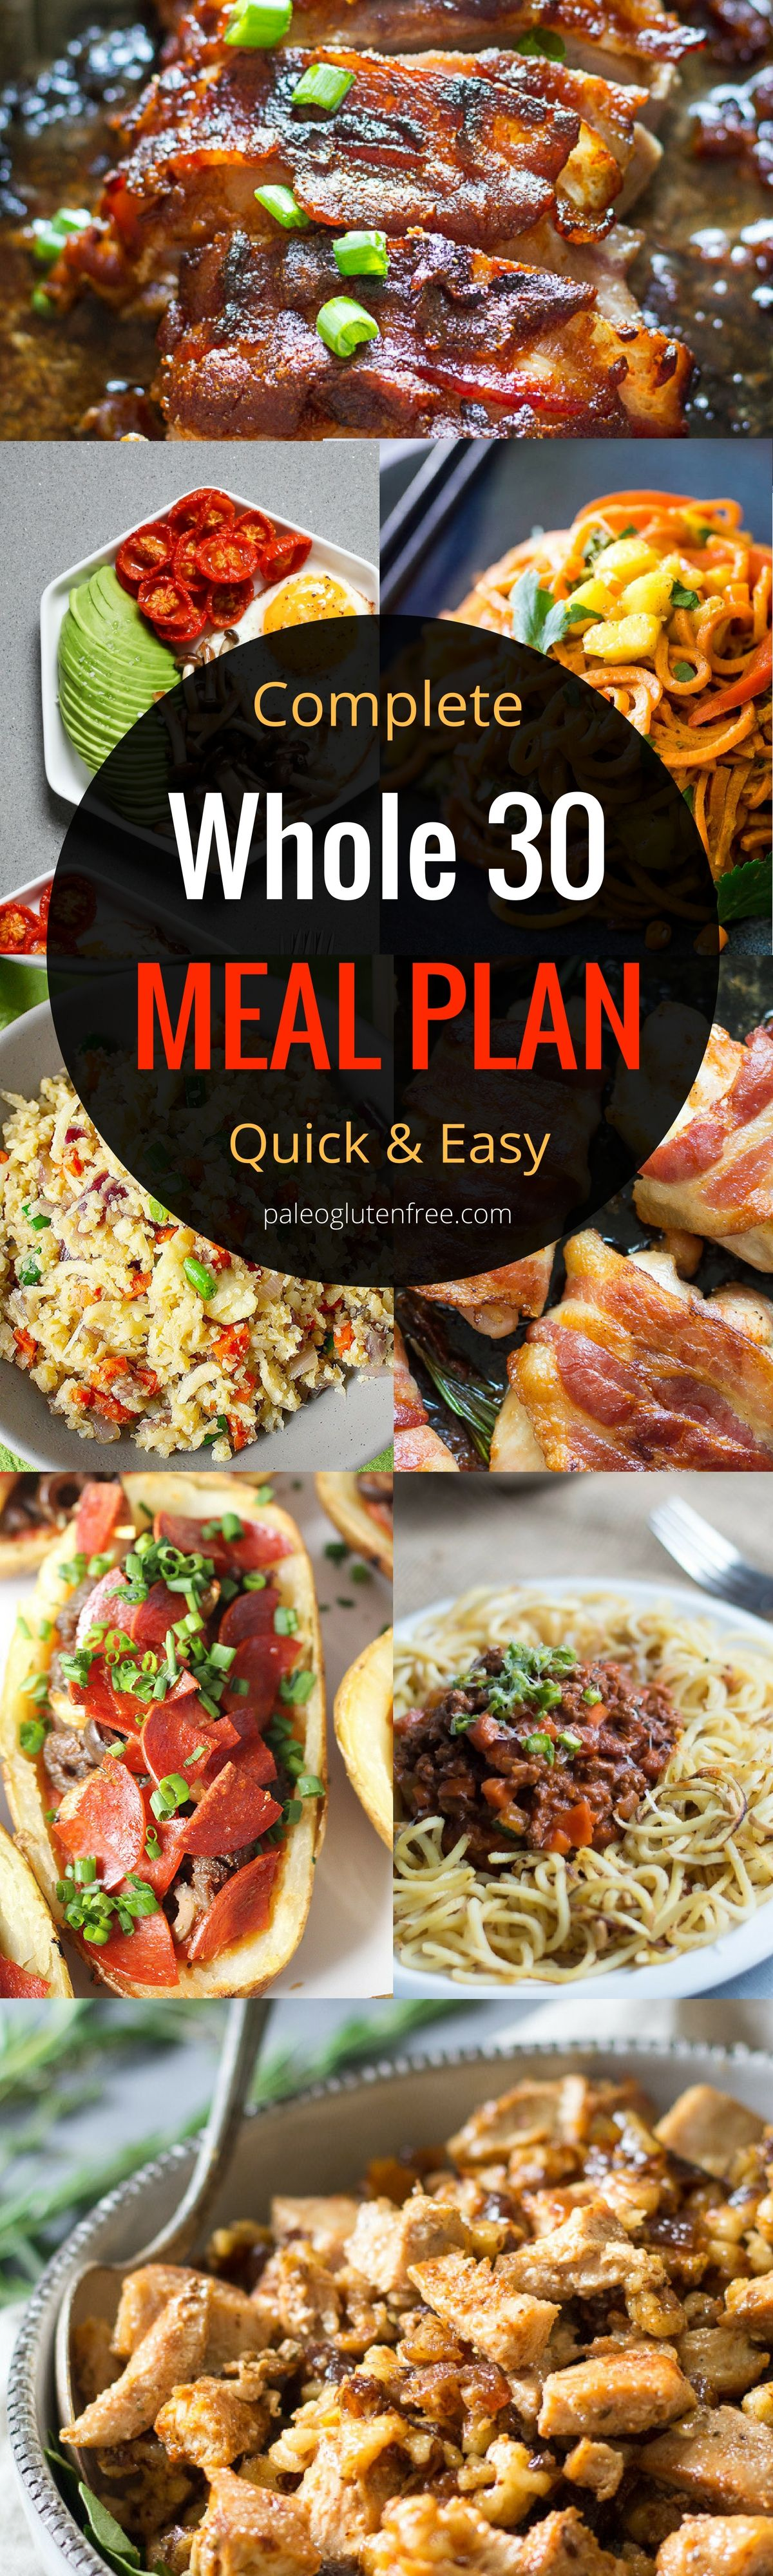 Your Meal Prep Guide to a Quick, Healthy Breakfast recommend